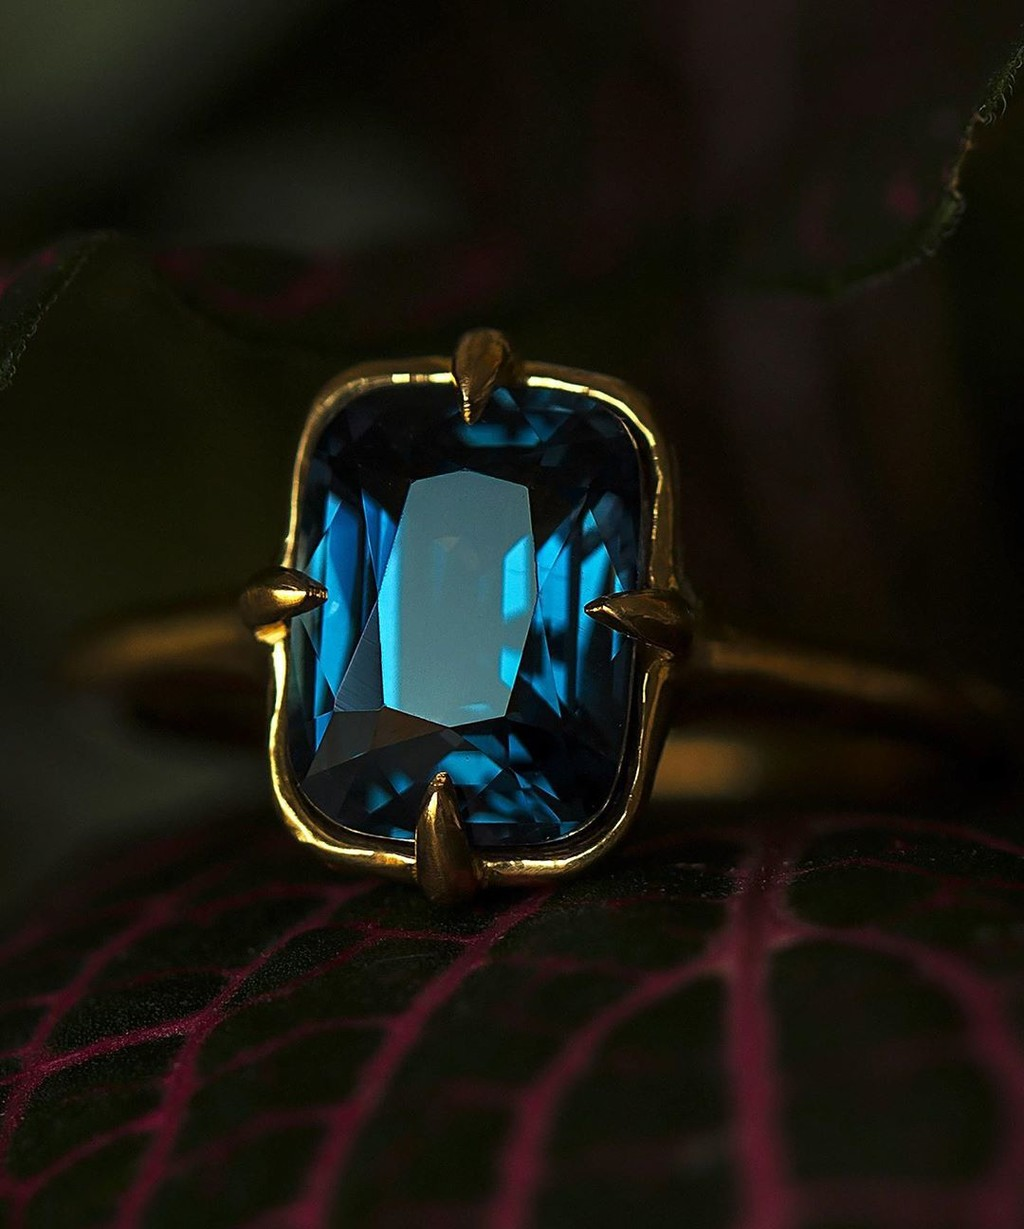 Can You Guess the Gemstone?